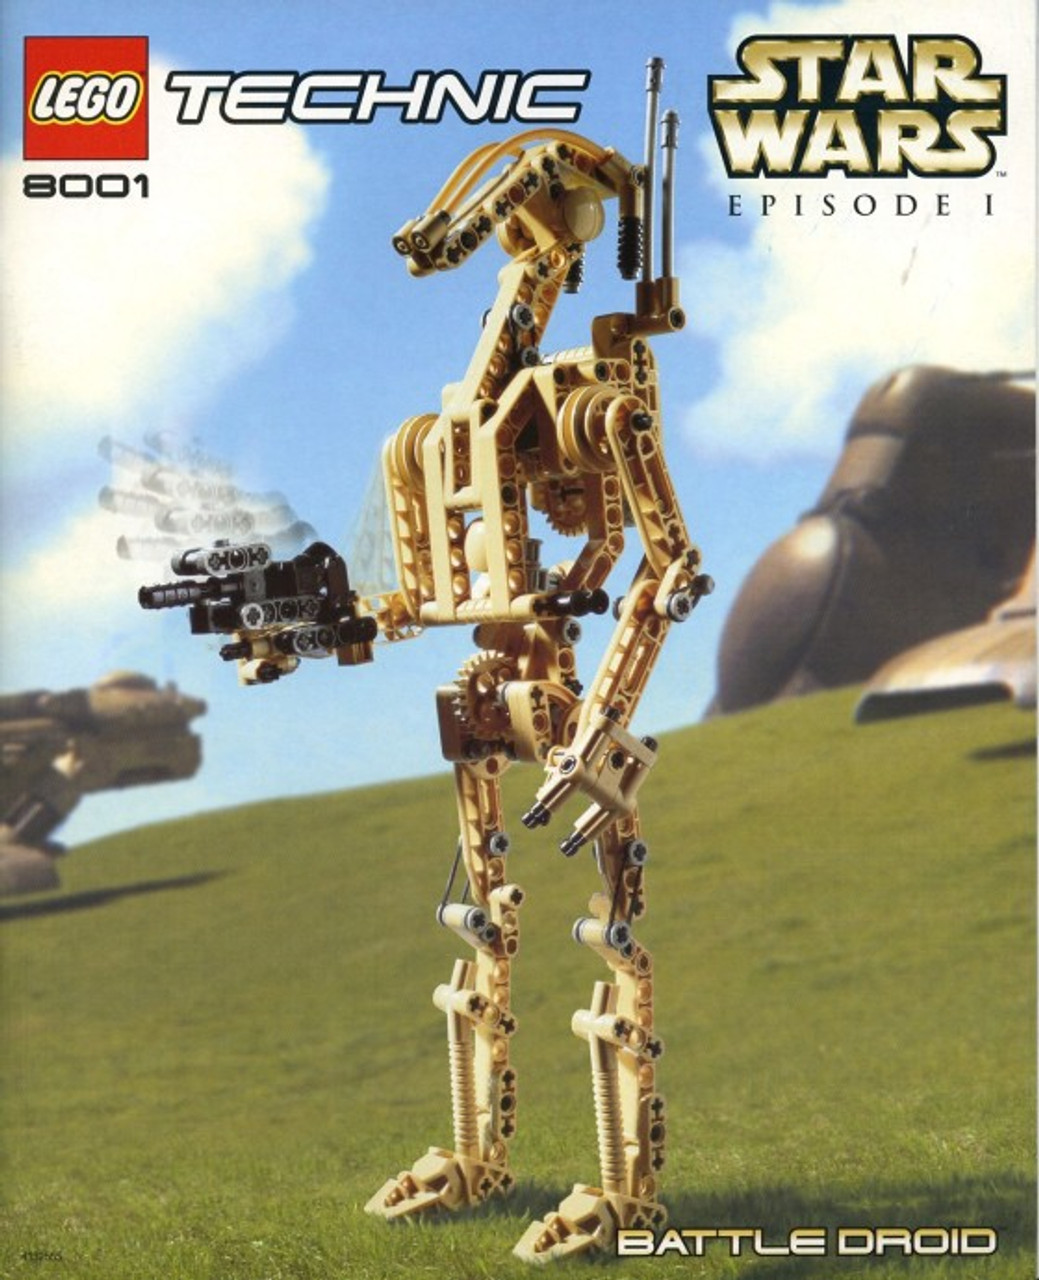 Lego Star Wars Phantom Menace Battle Droid Set 8001 Damaged Package